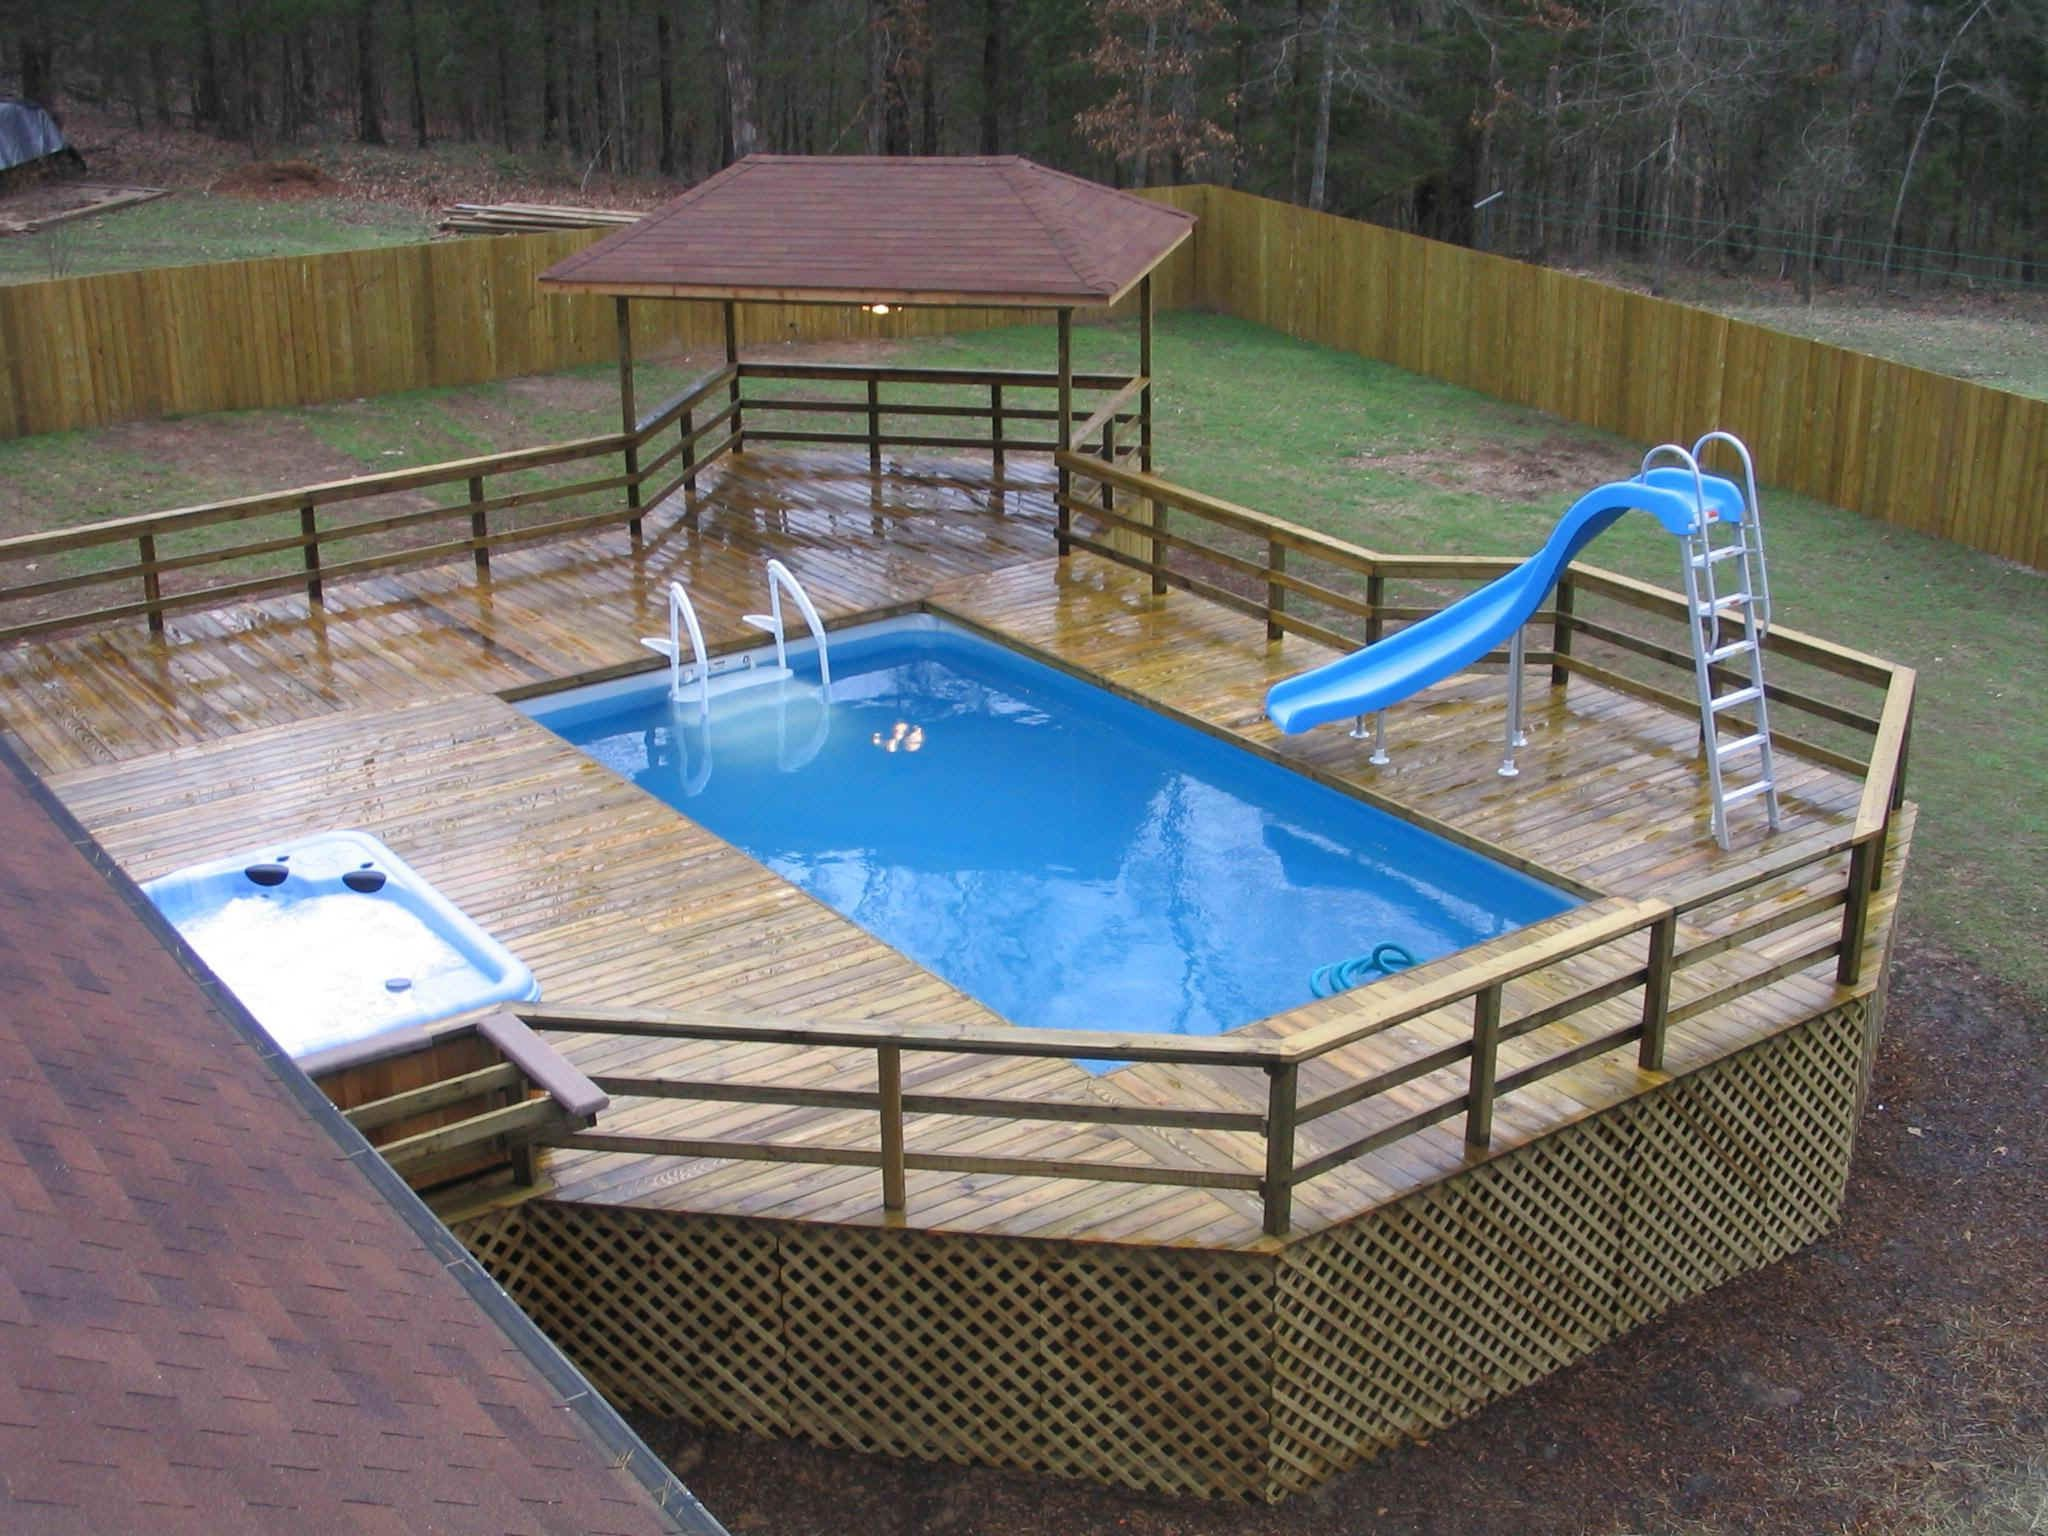 Well as many people want to have a simple pool yet unique Pool design plans